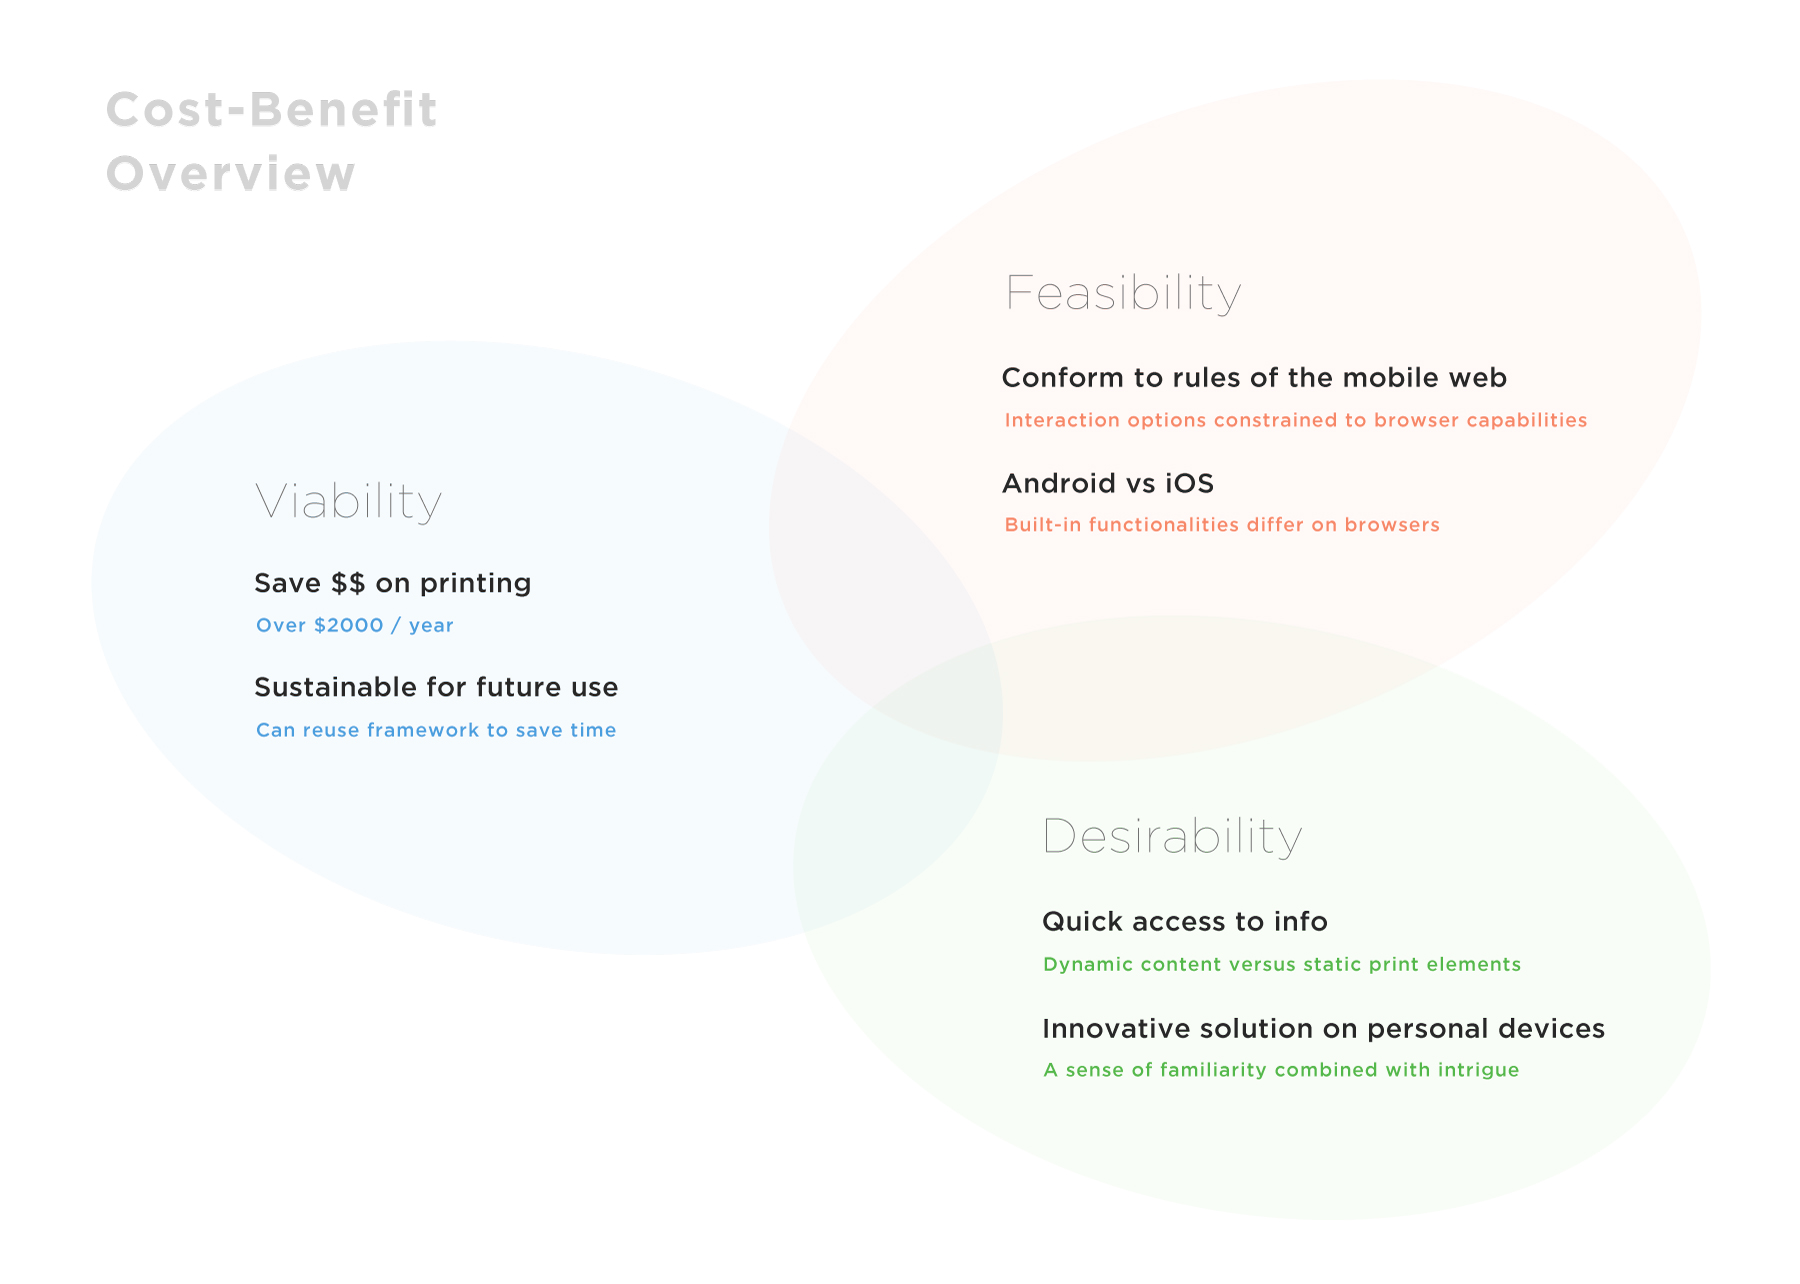 Cost and benefits of creating the TEDxSFU mobile program guide considering feasibility, viability and desirability.